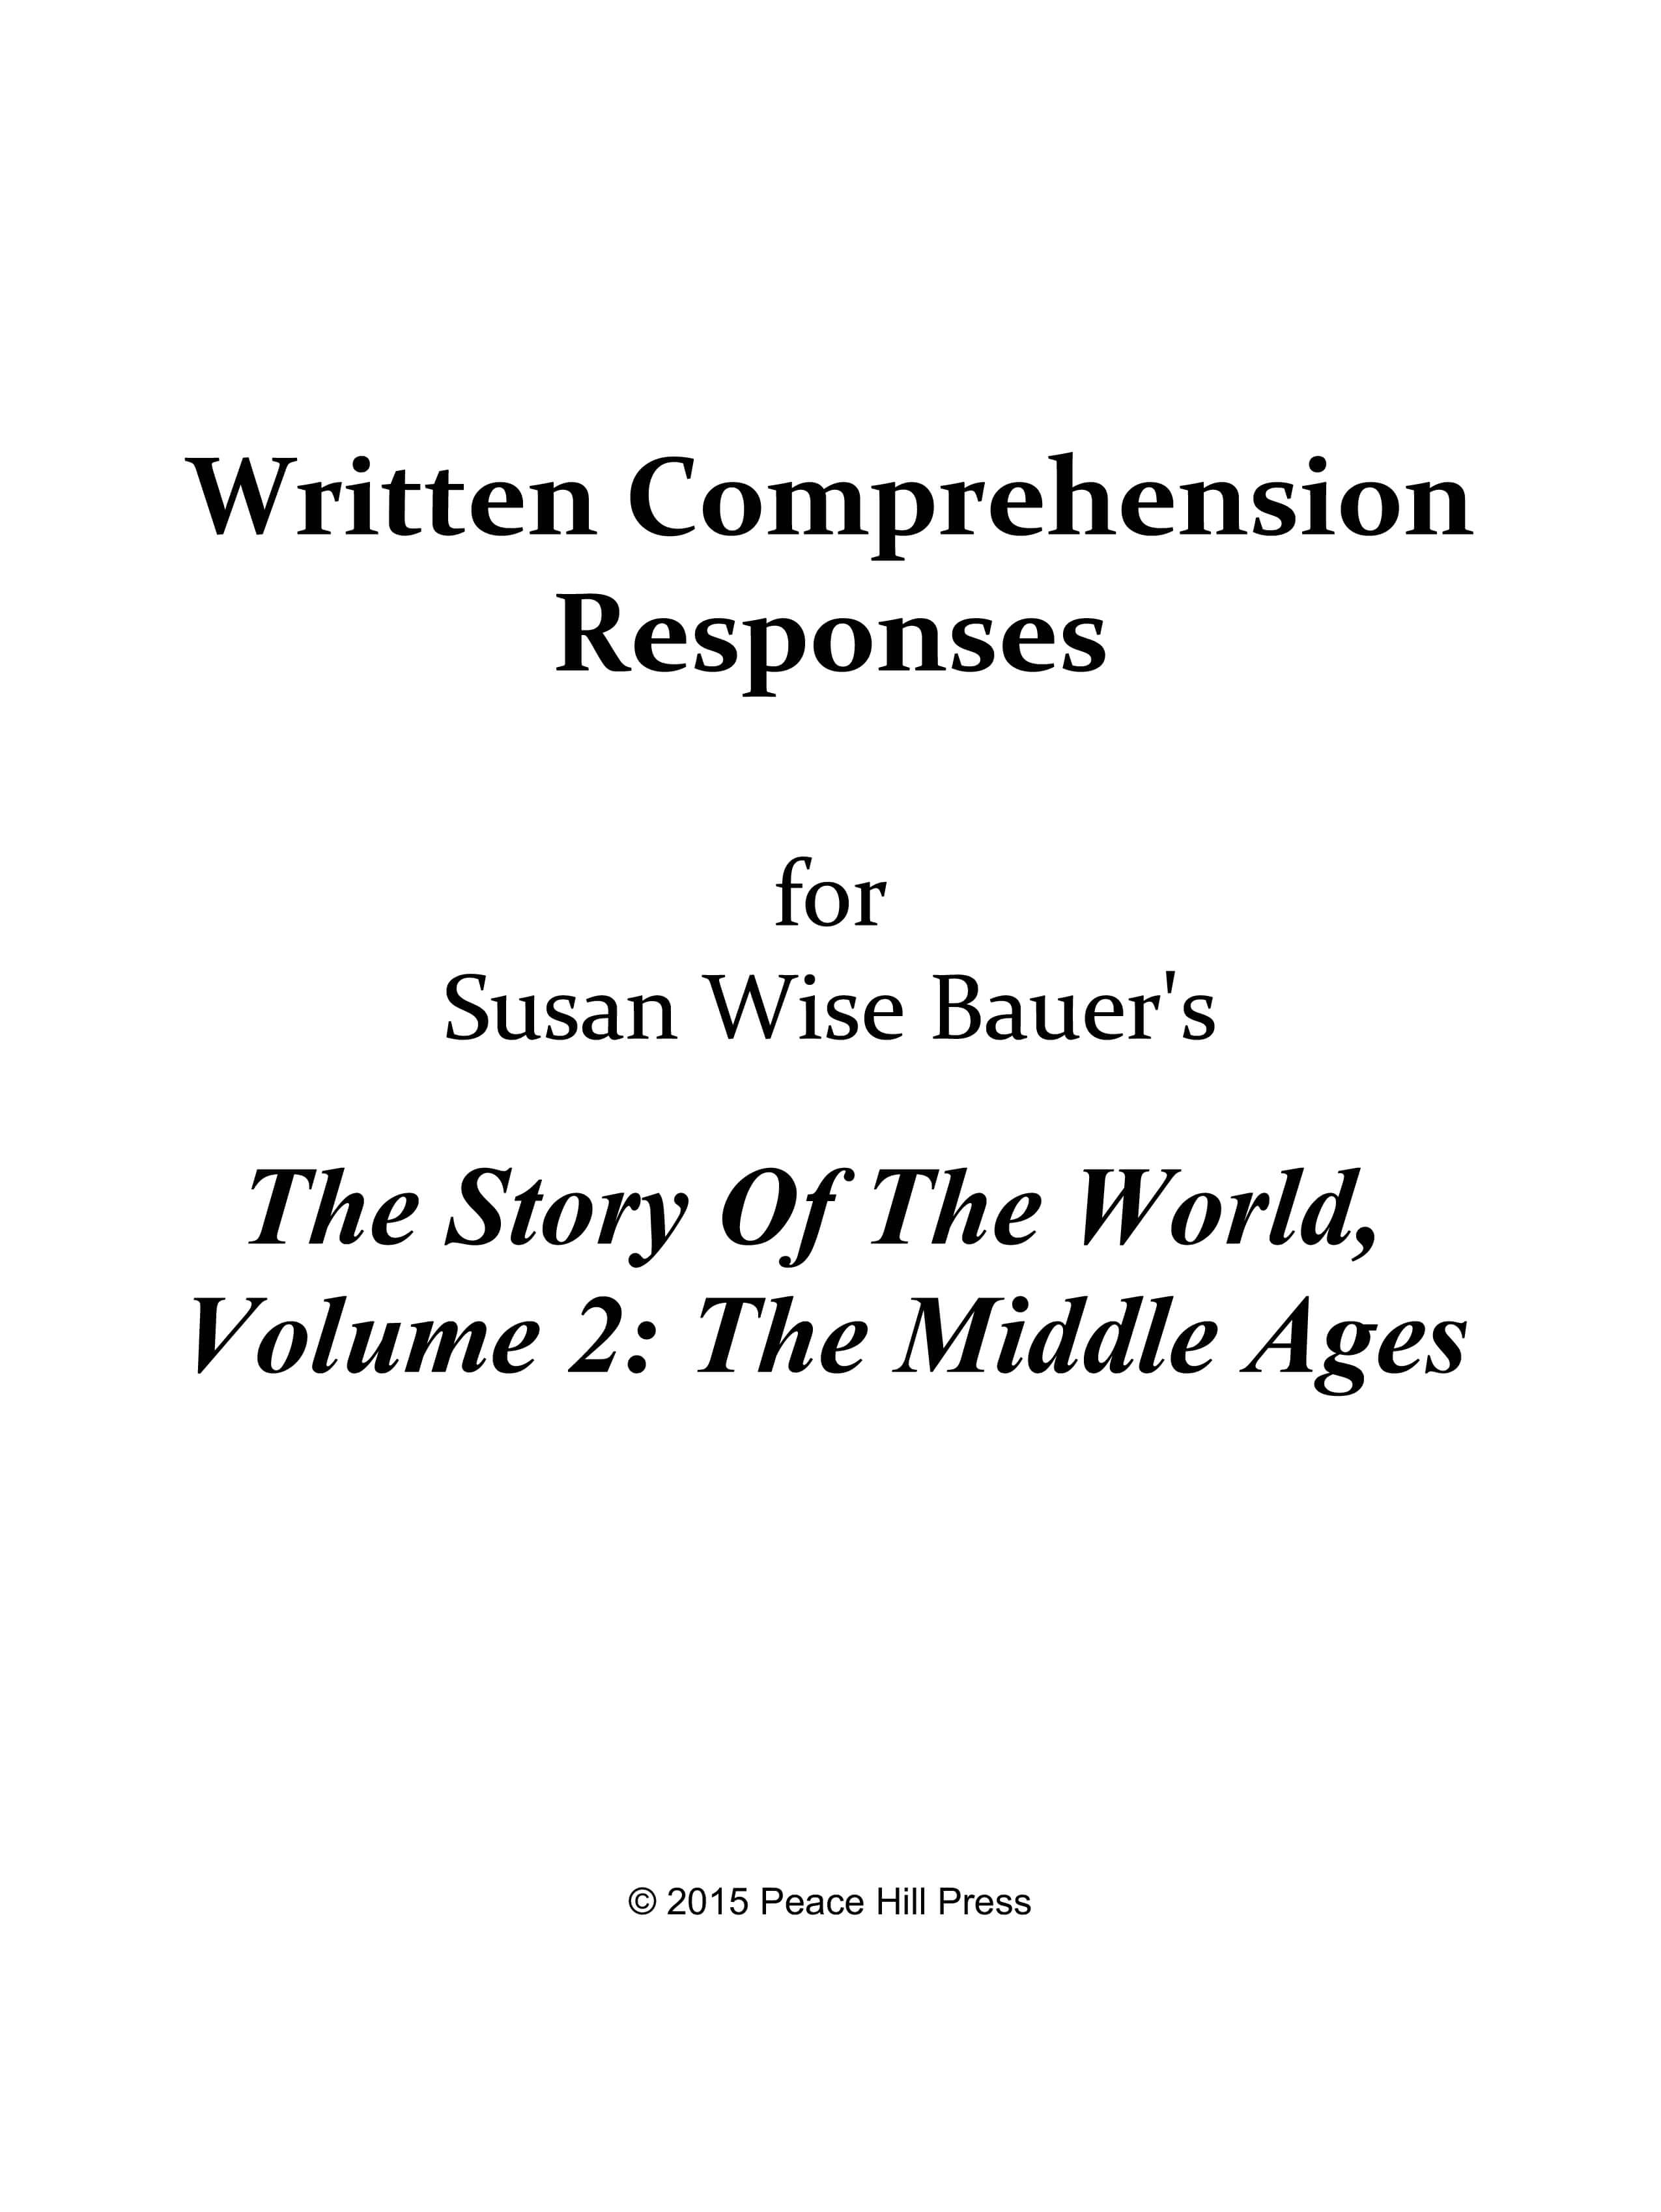 The Story of the World Vol. 2: The Middle Ages, Written